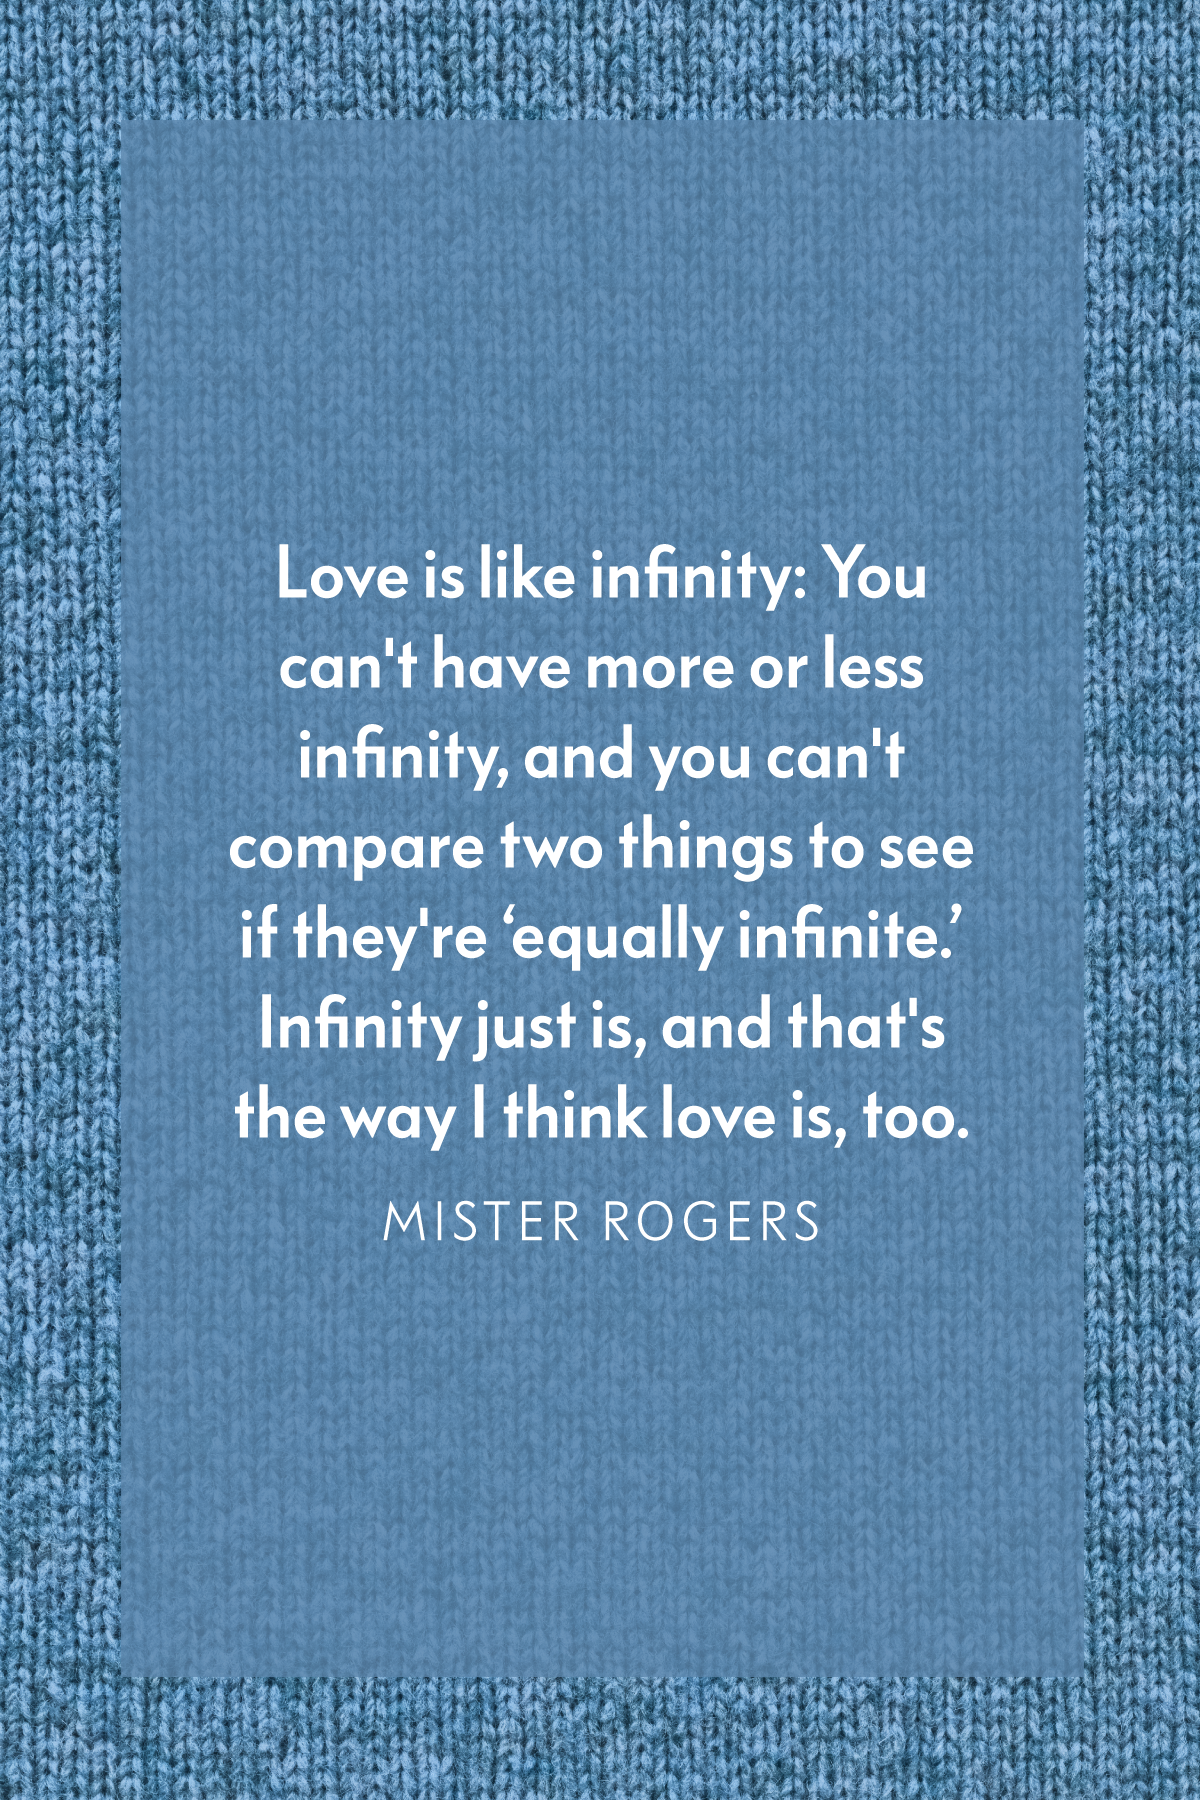 23 Mister Rogers Quotes That Ll Make Your Day Better